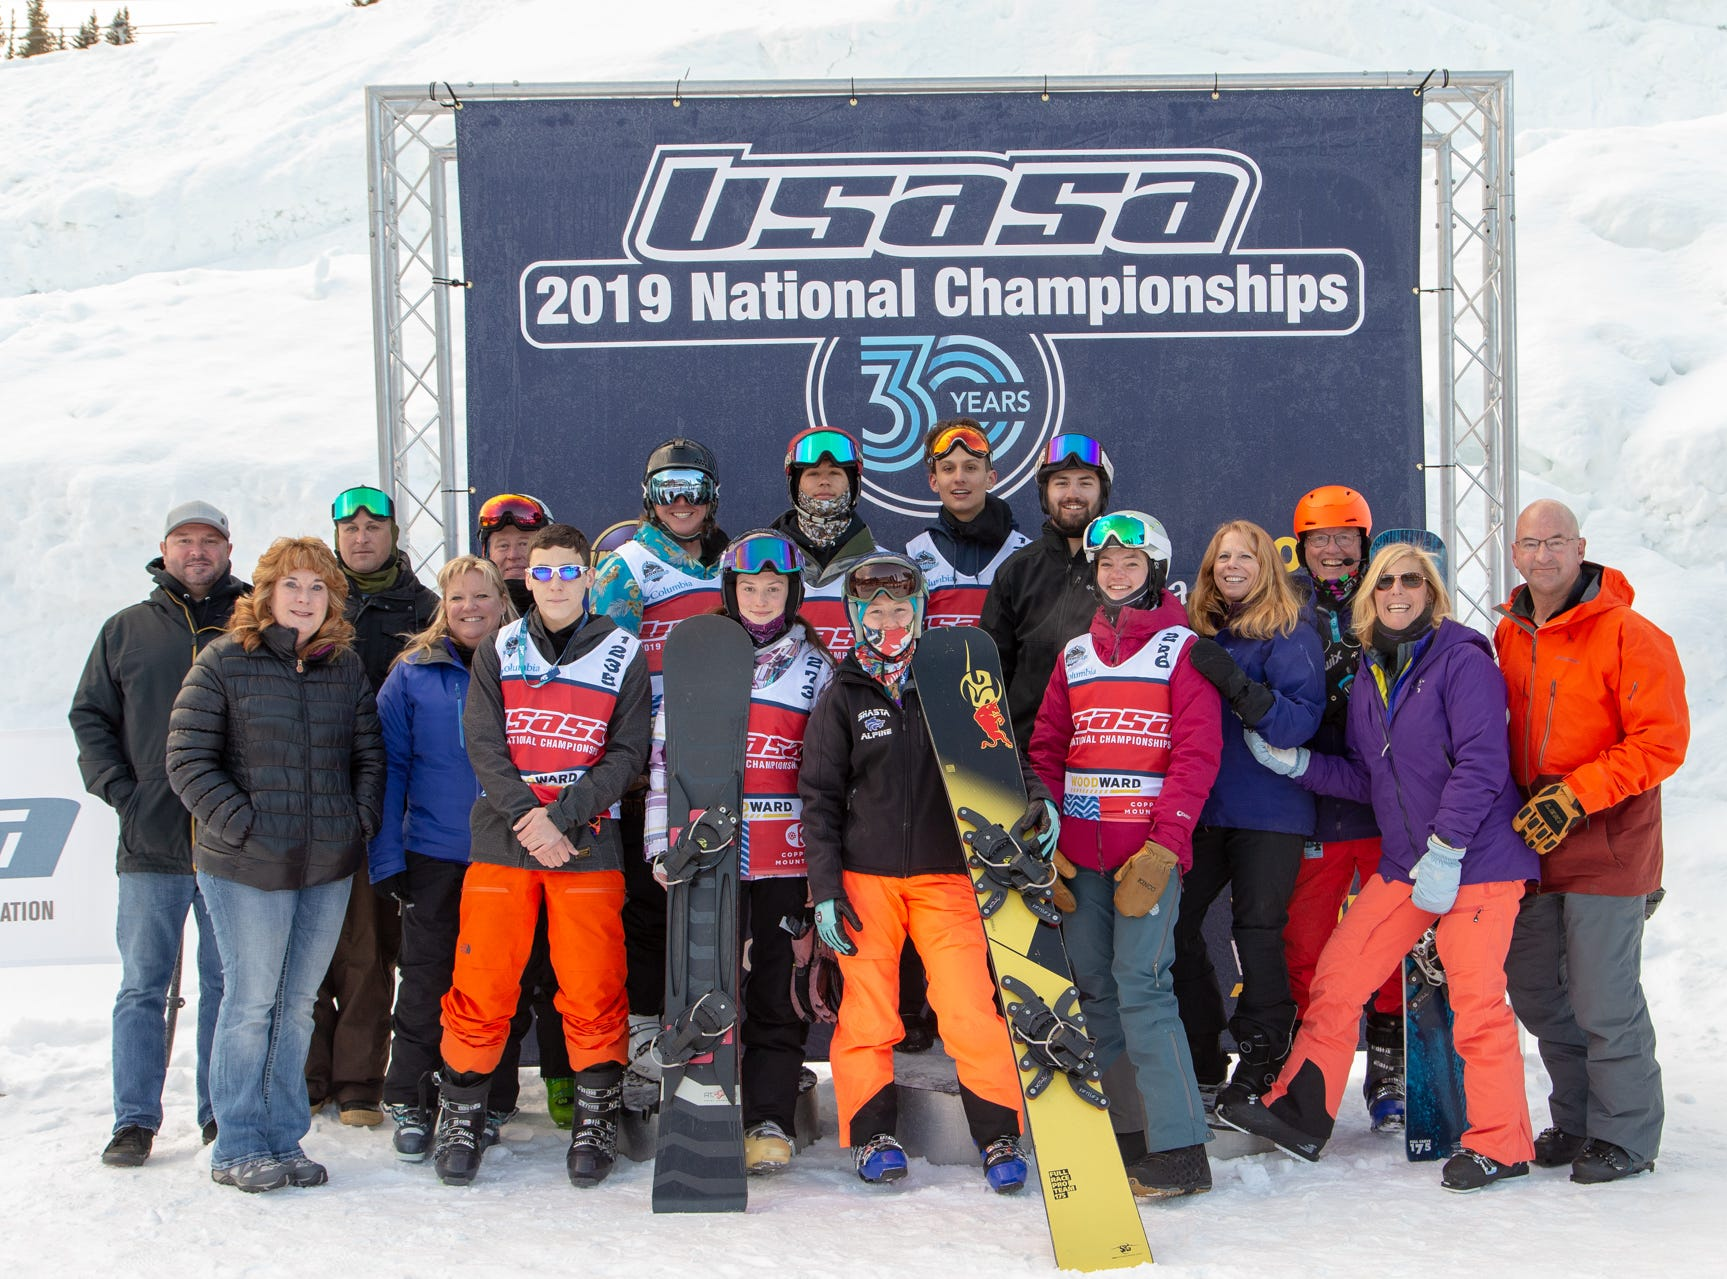 North State snowboarders compete at the 2019 USASA National Championships at Copper Mountain in Colorado.